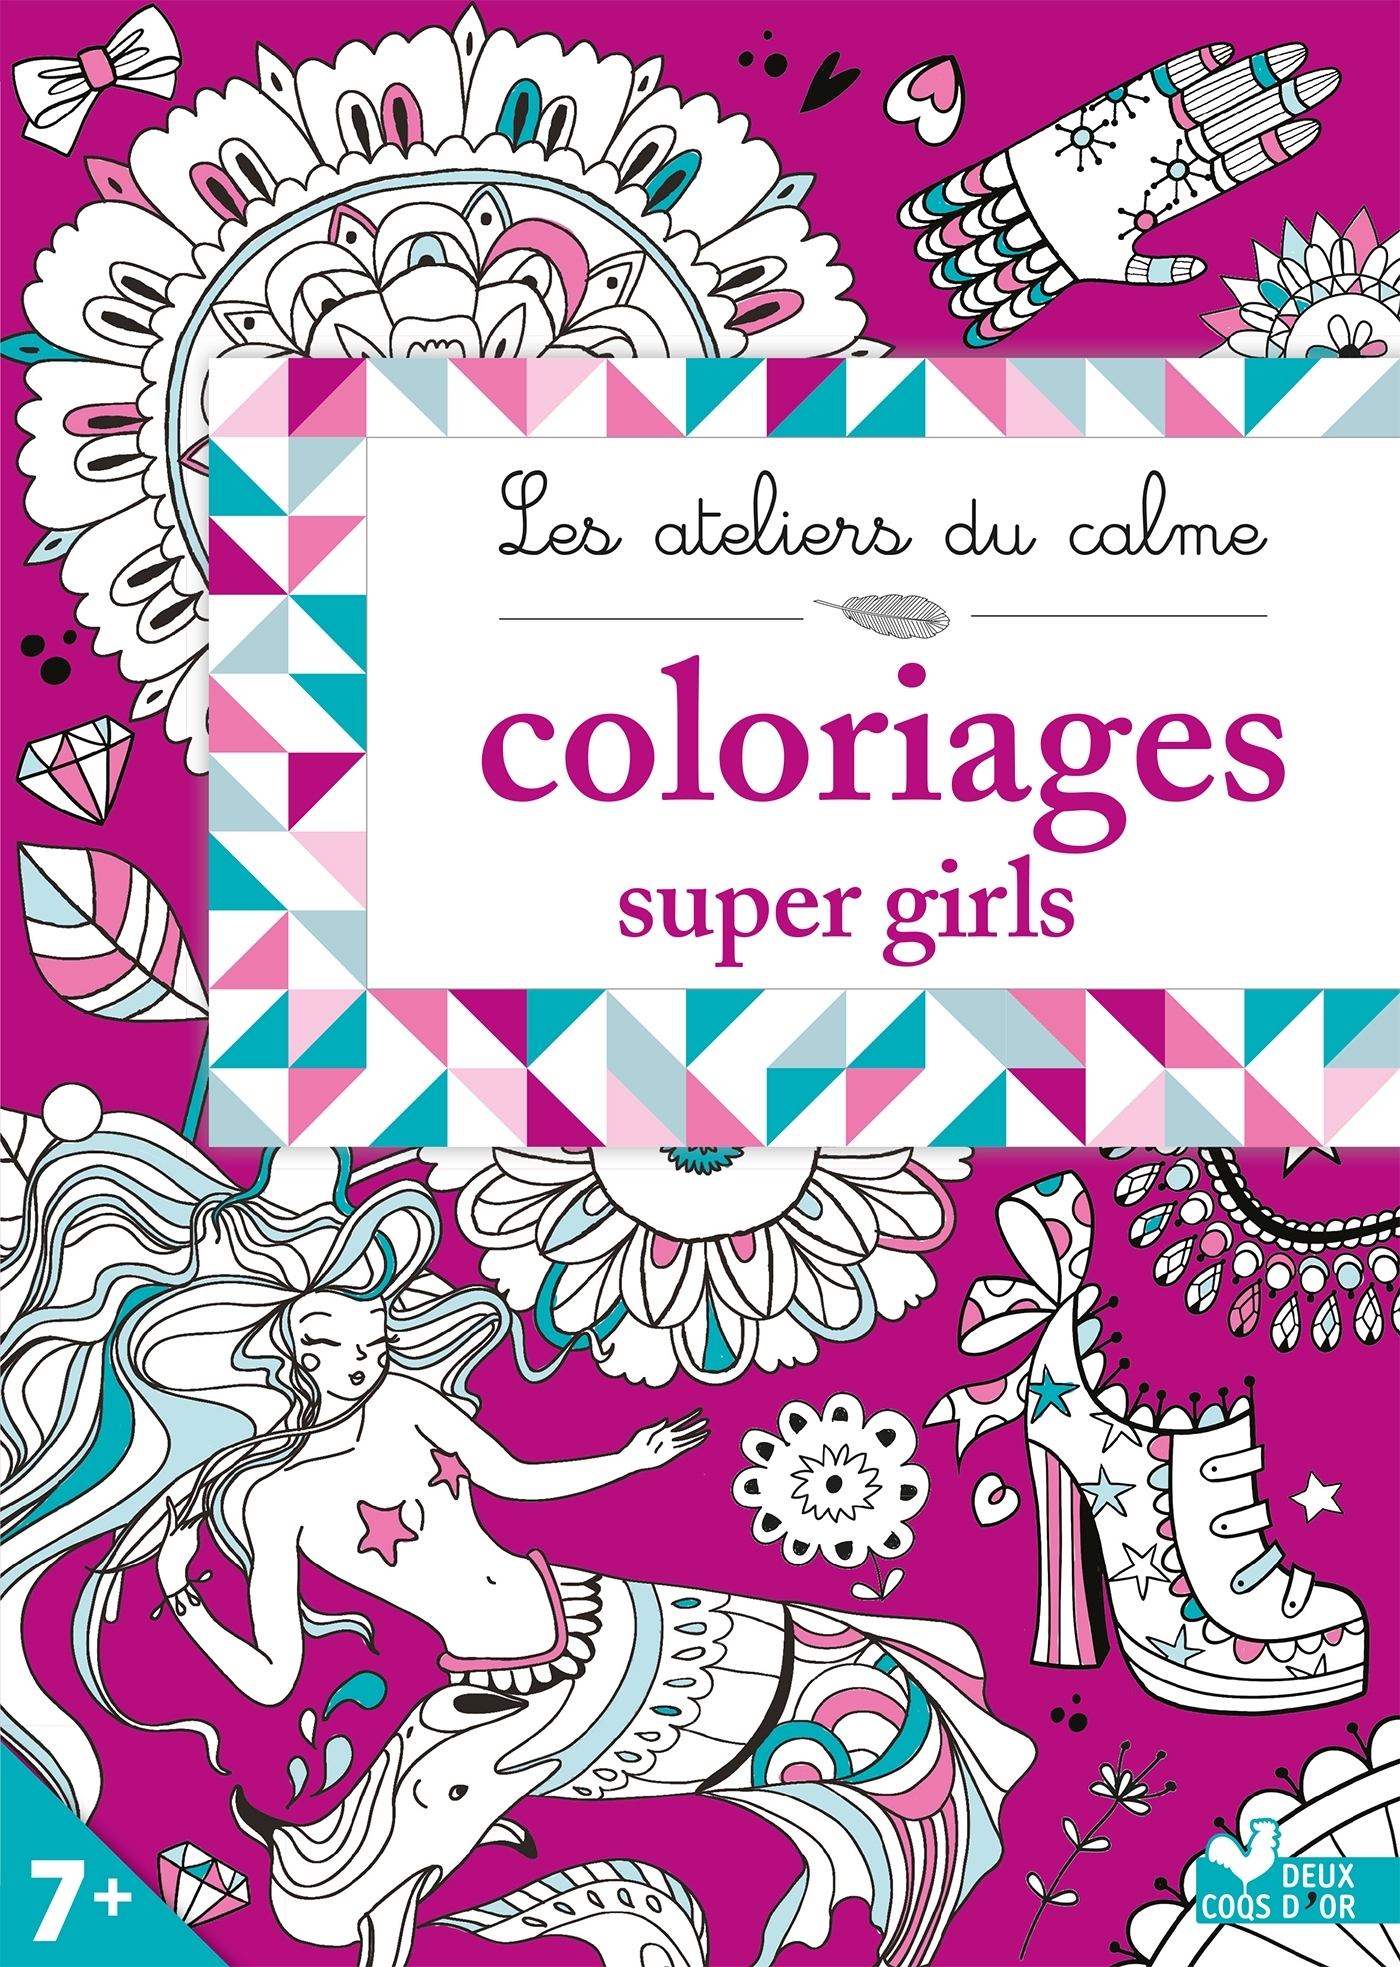 ADC - COLORIAGES SUPER GIRLS